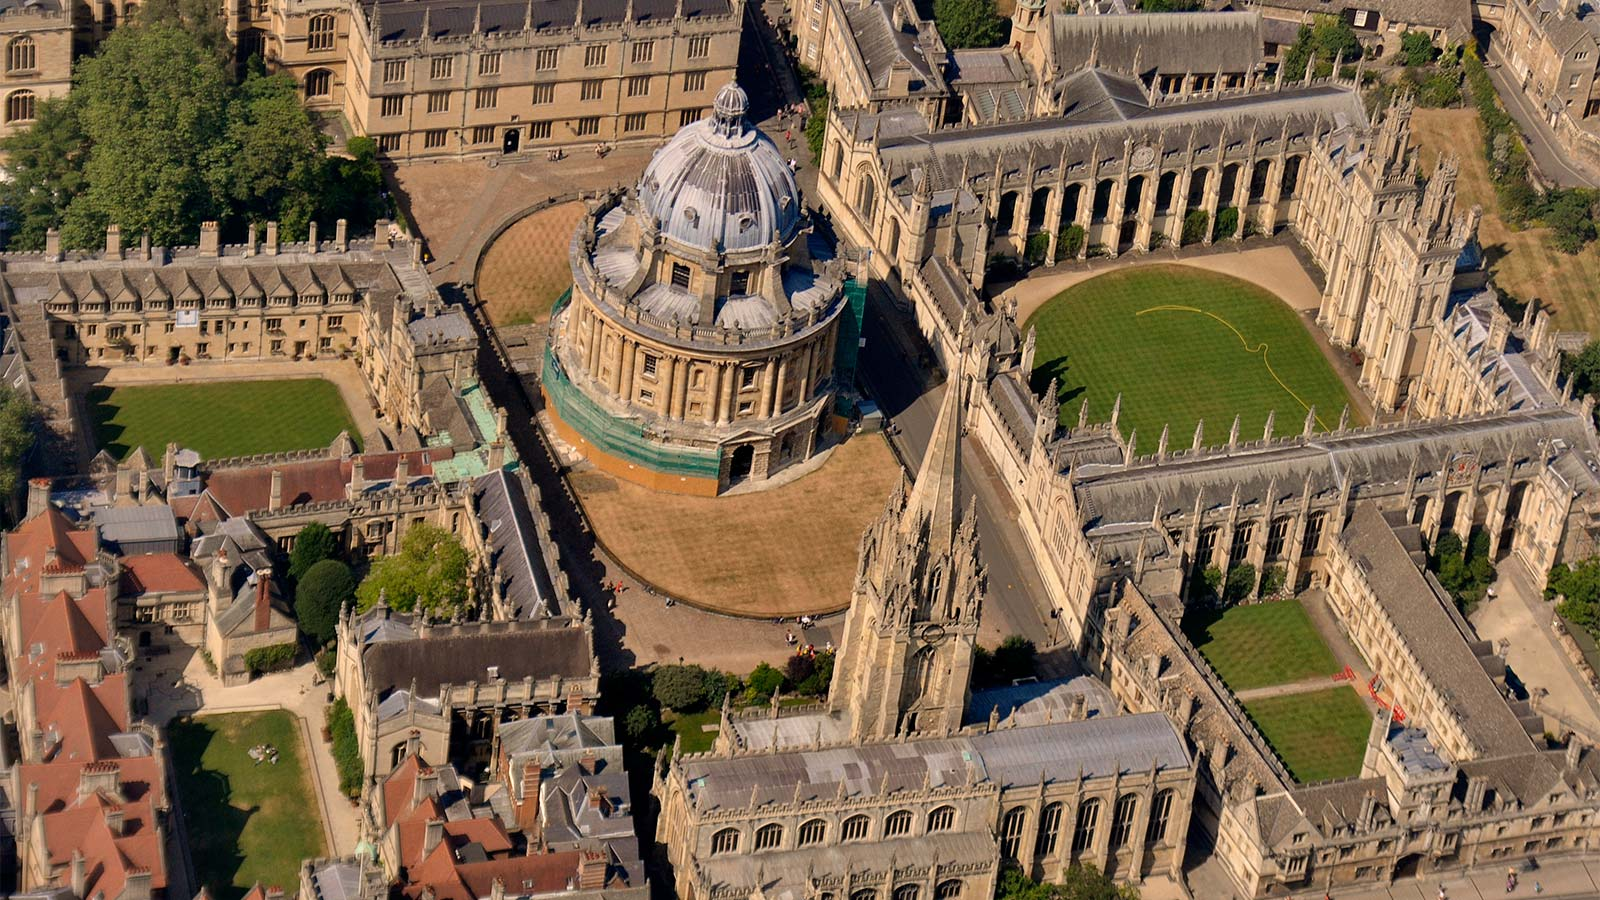 View from air of Radcliffe Camera and surrounding colleges